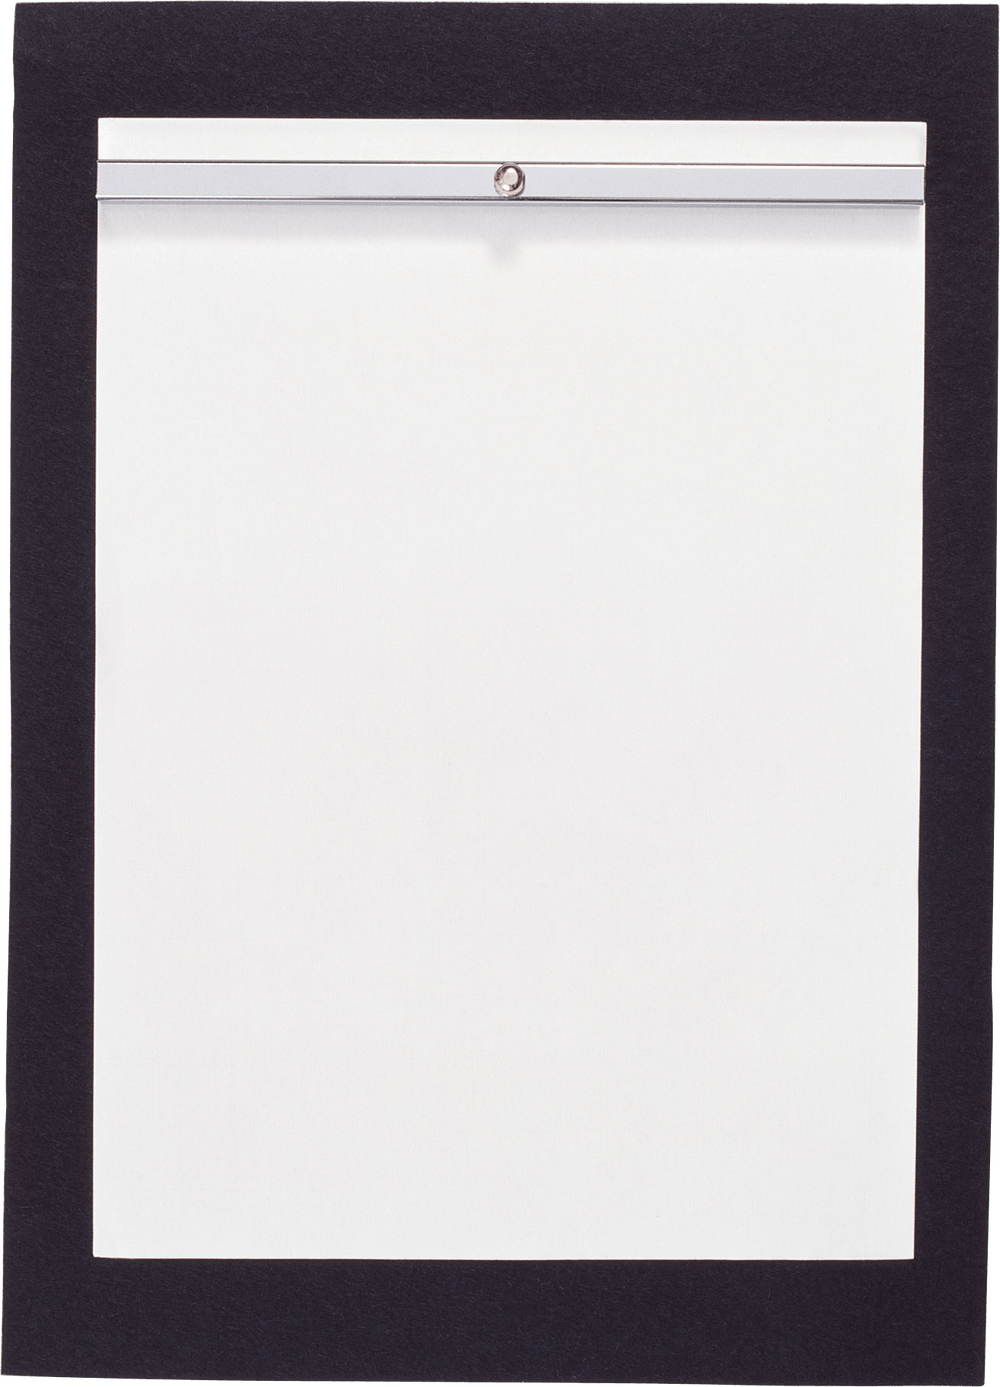 paper_sheet_PNG7252.png